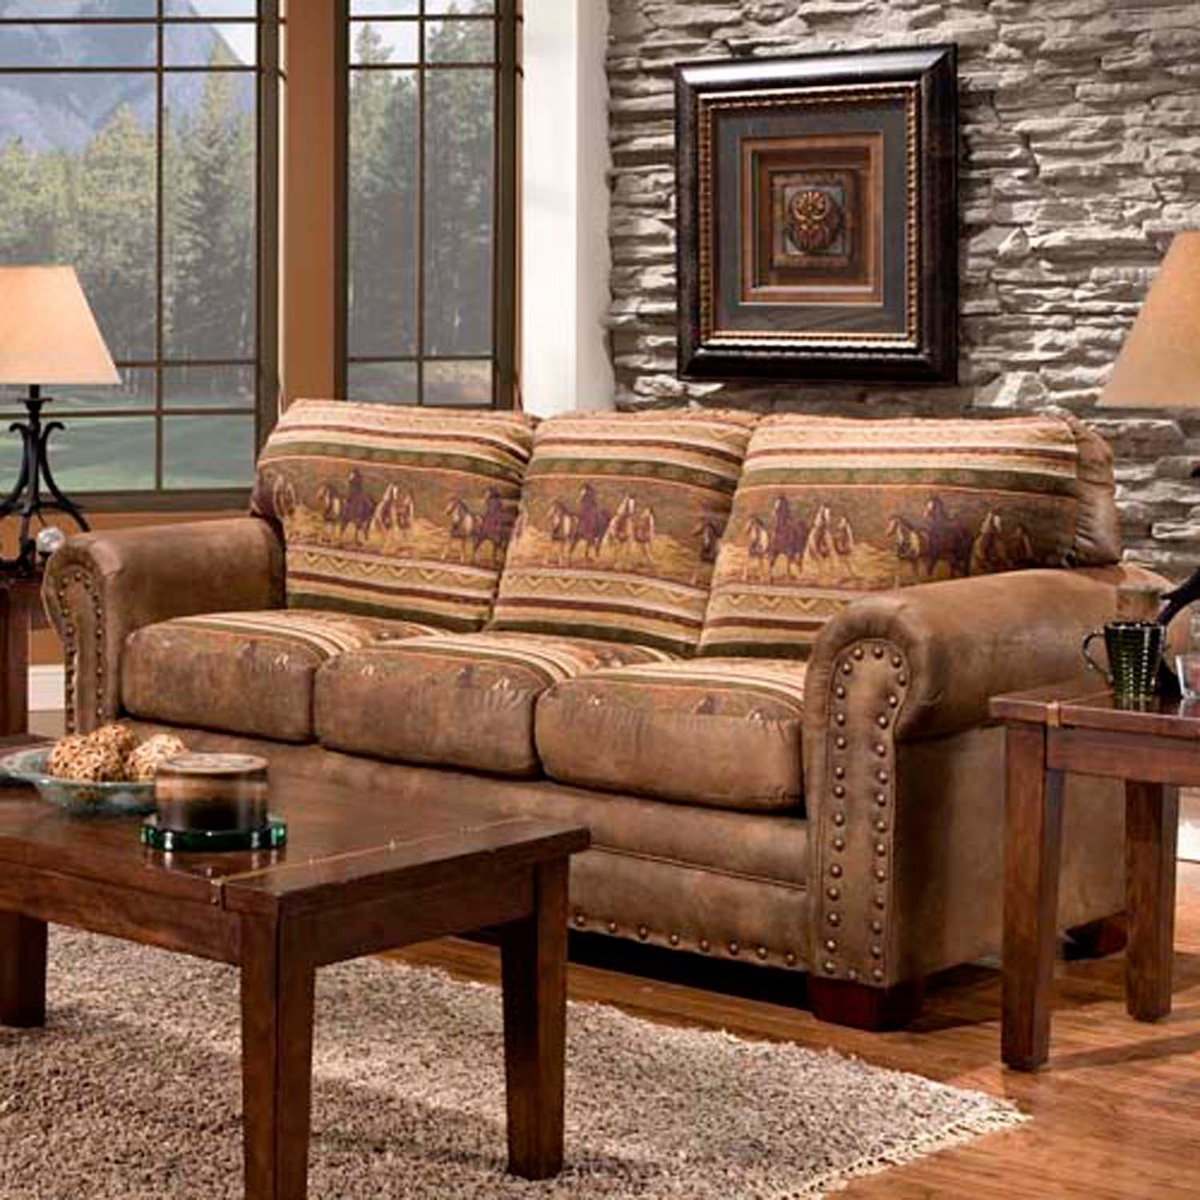 Furniture Town Melbourne Shops In Egypt Hub Contact Number ...